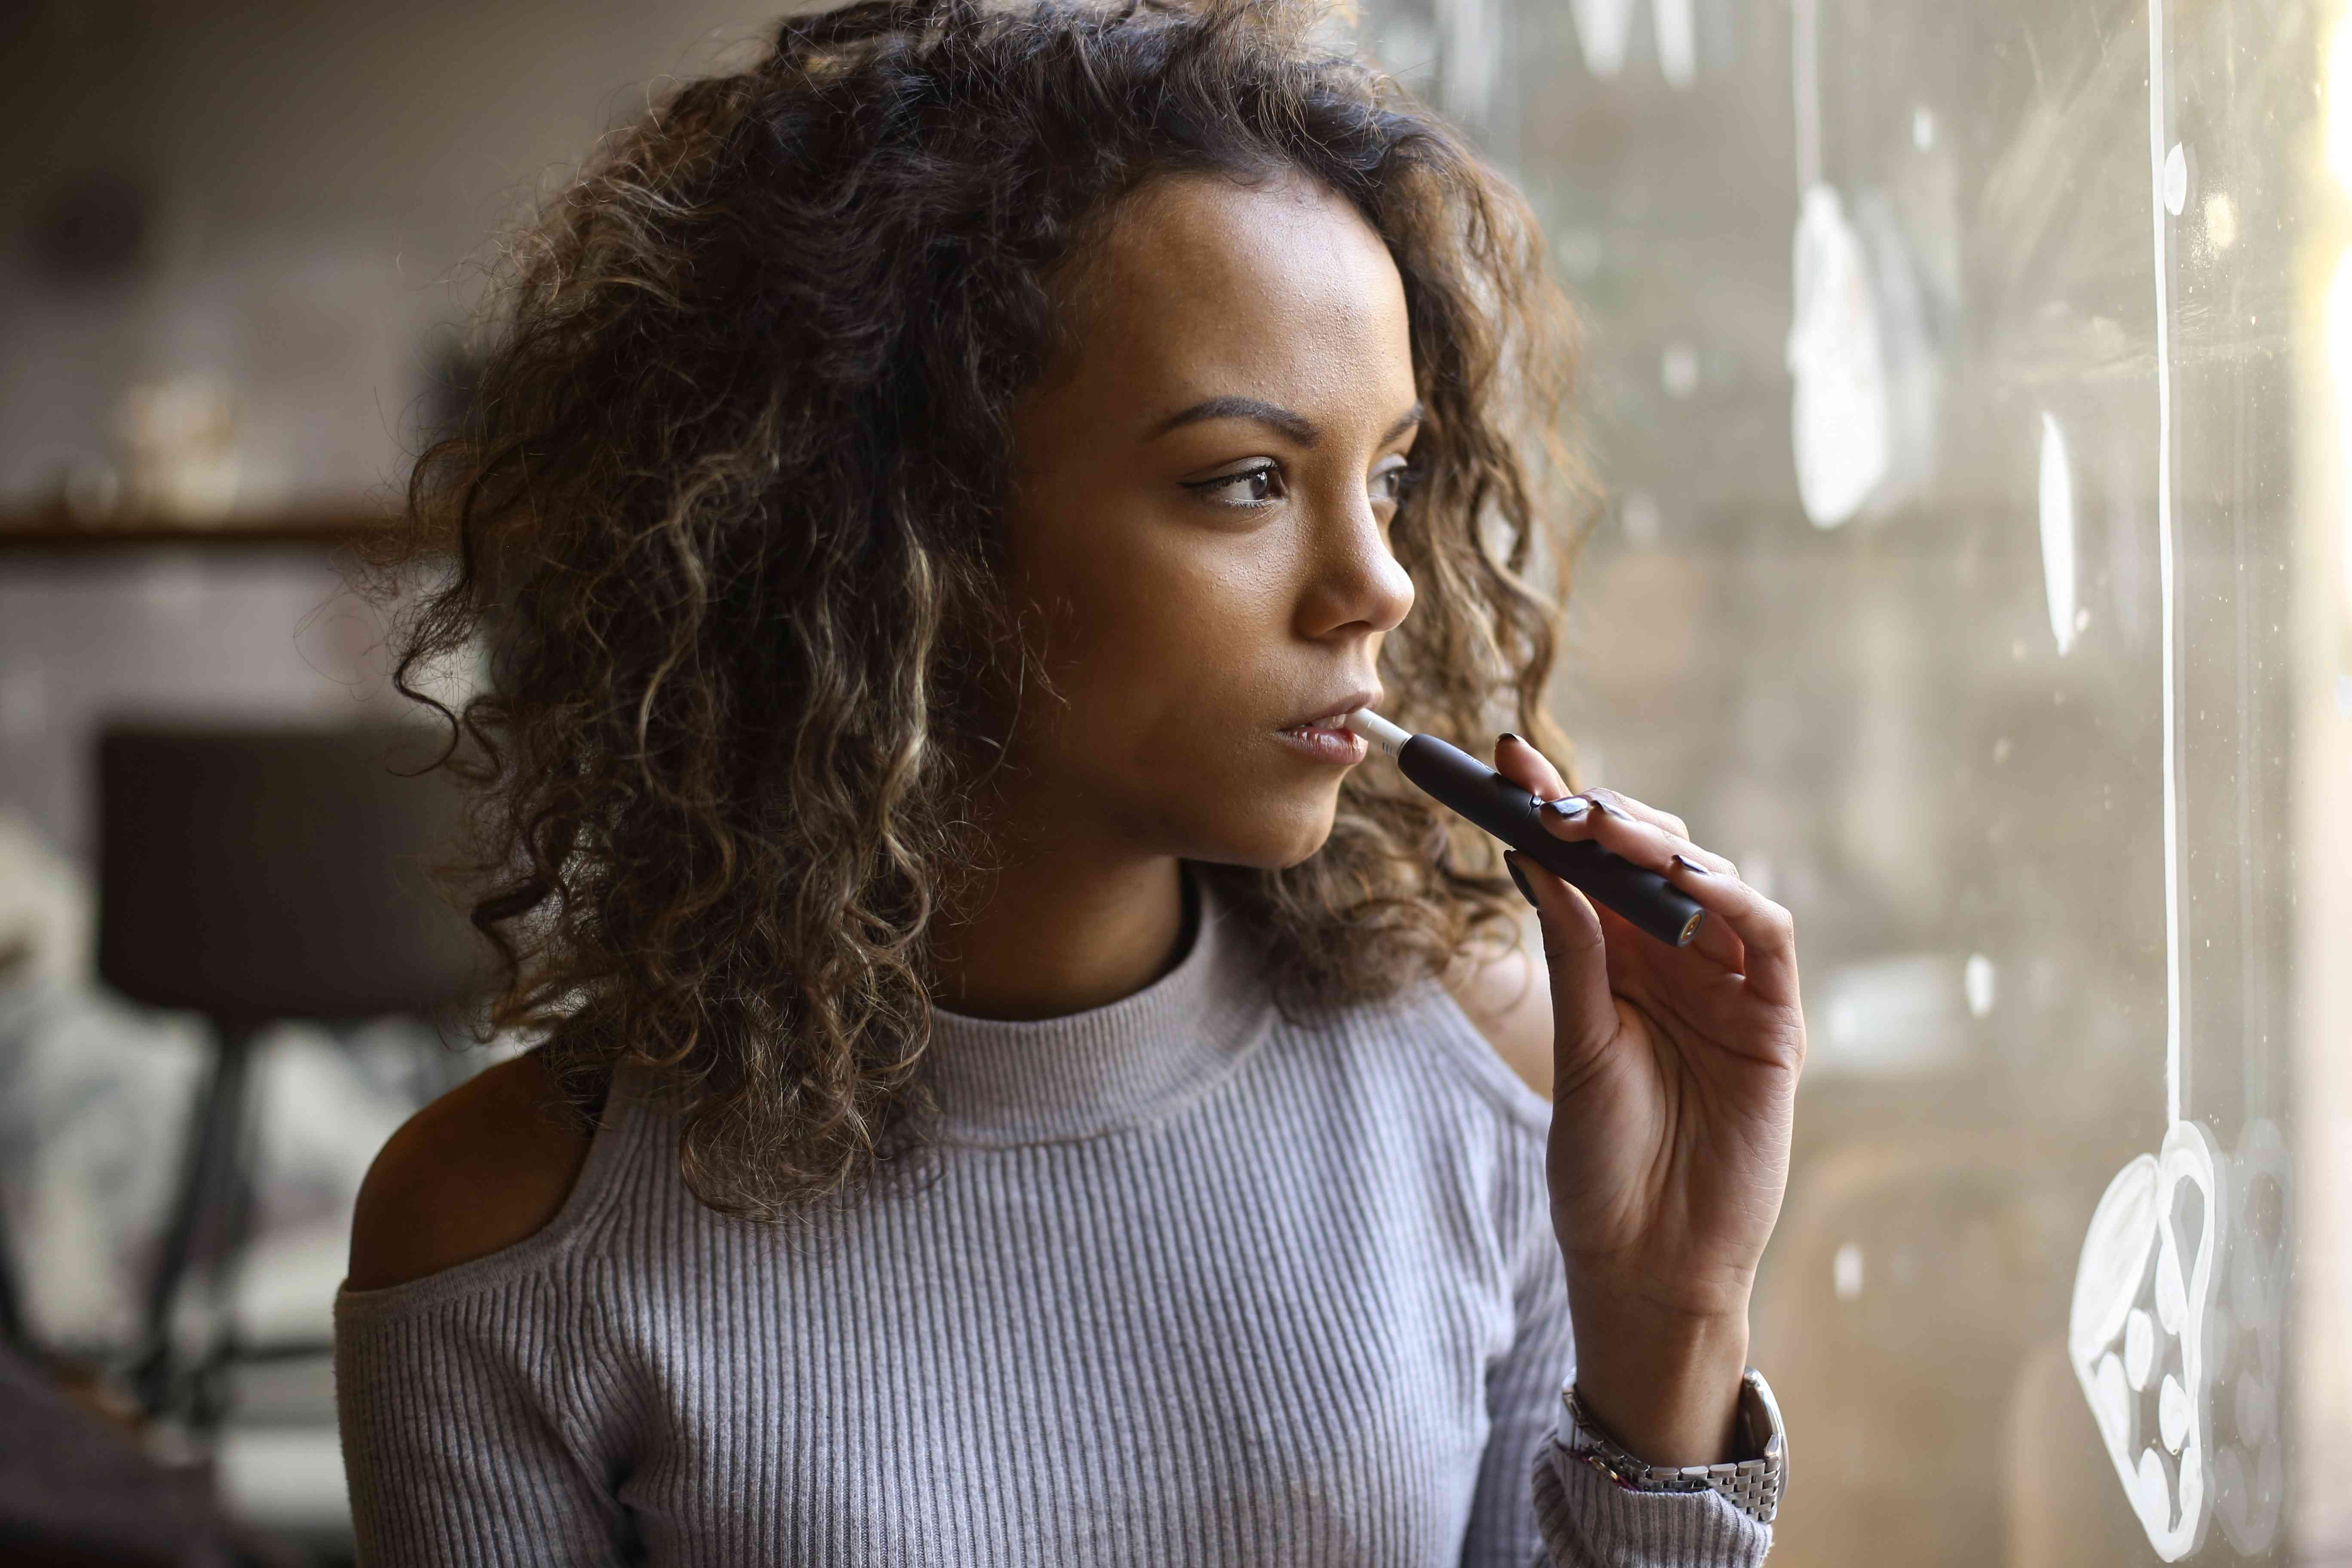 Young woman vaping in a bar